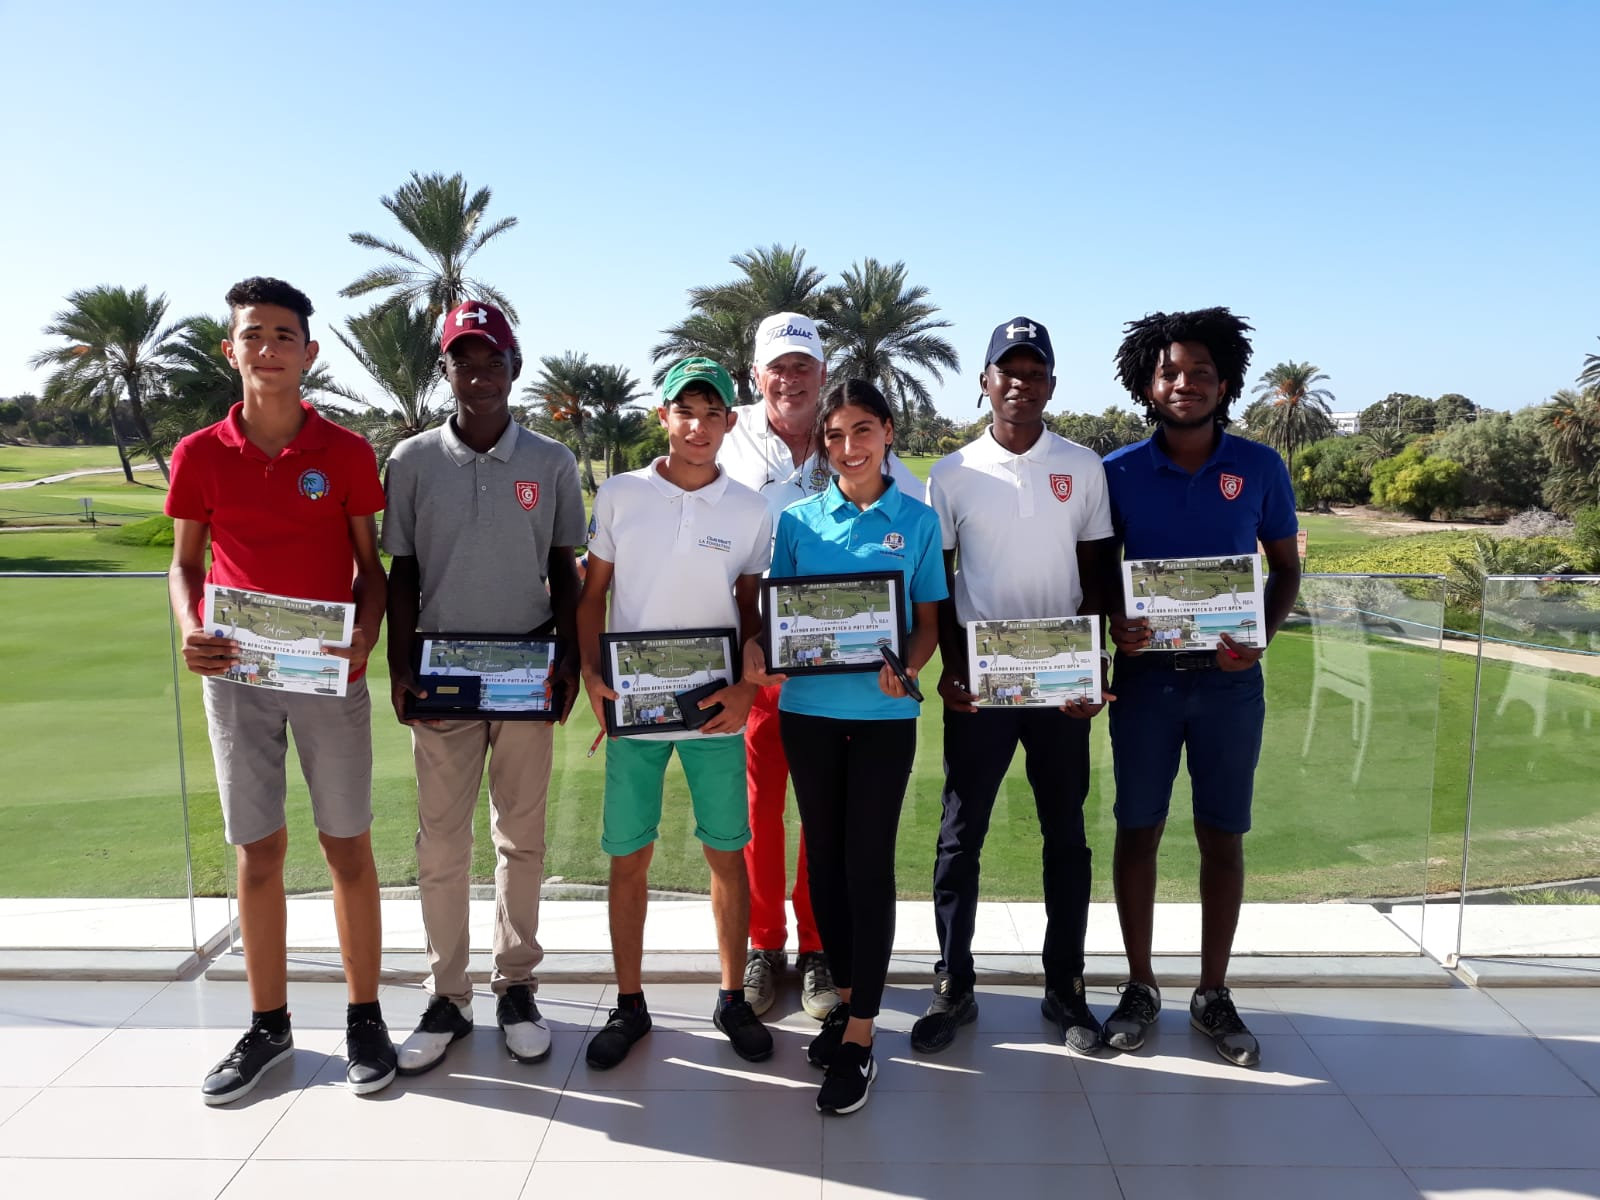 Jean-Luc Pannetier won the Djerba African P&P Open 2019